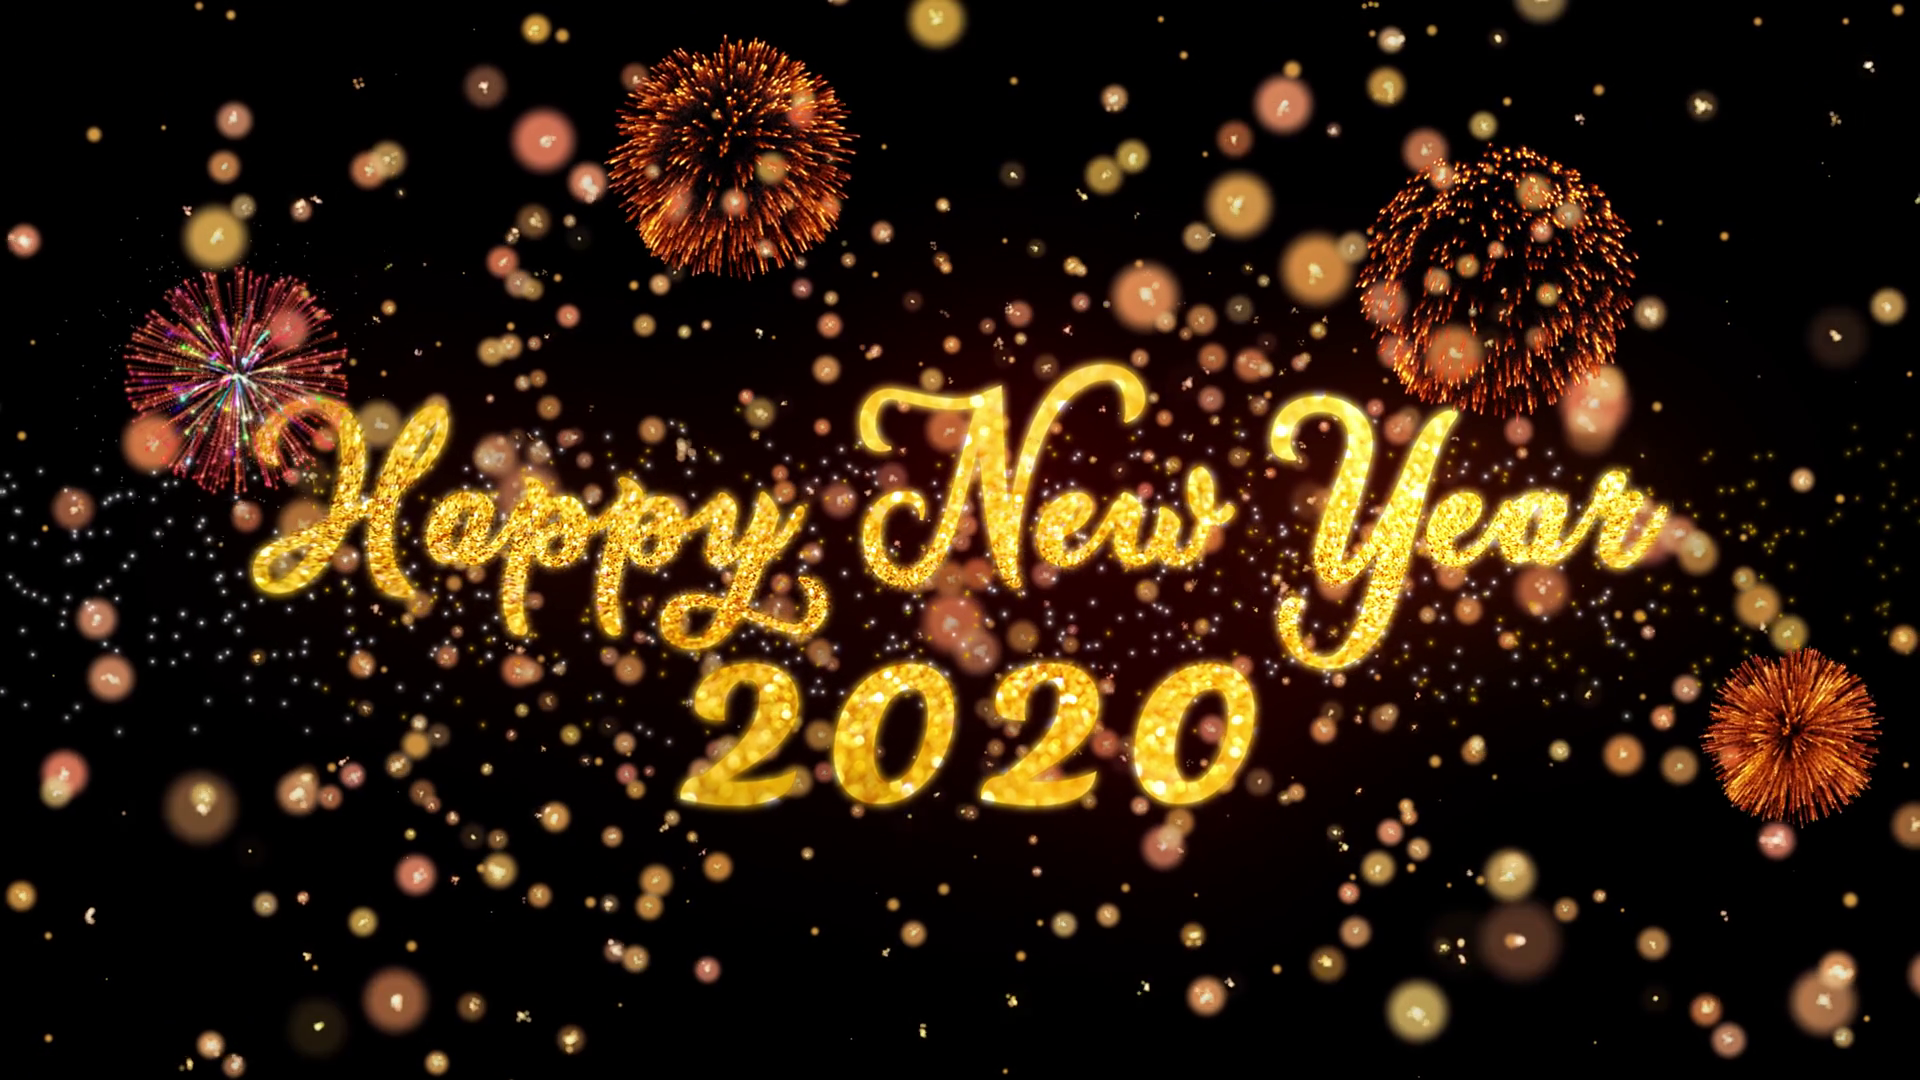 Photos of the new year 2020